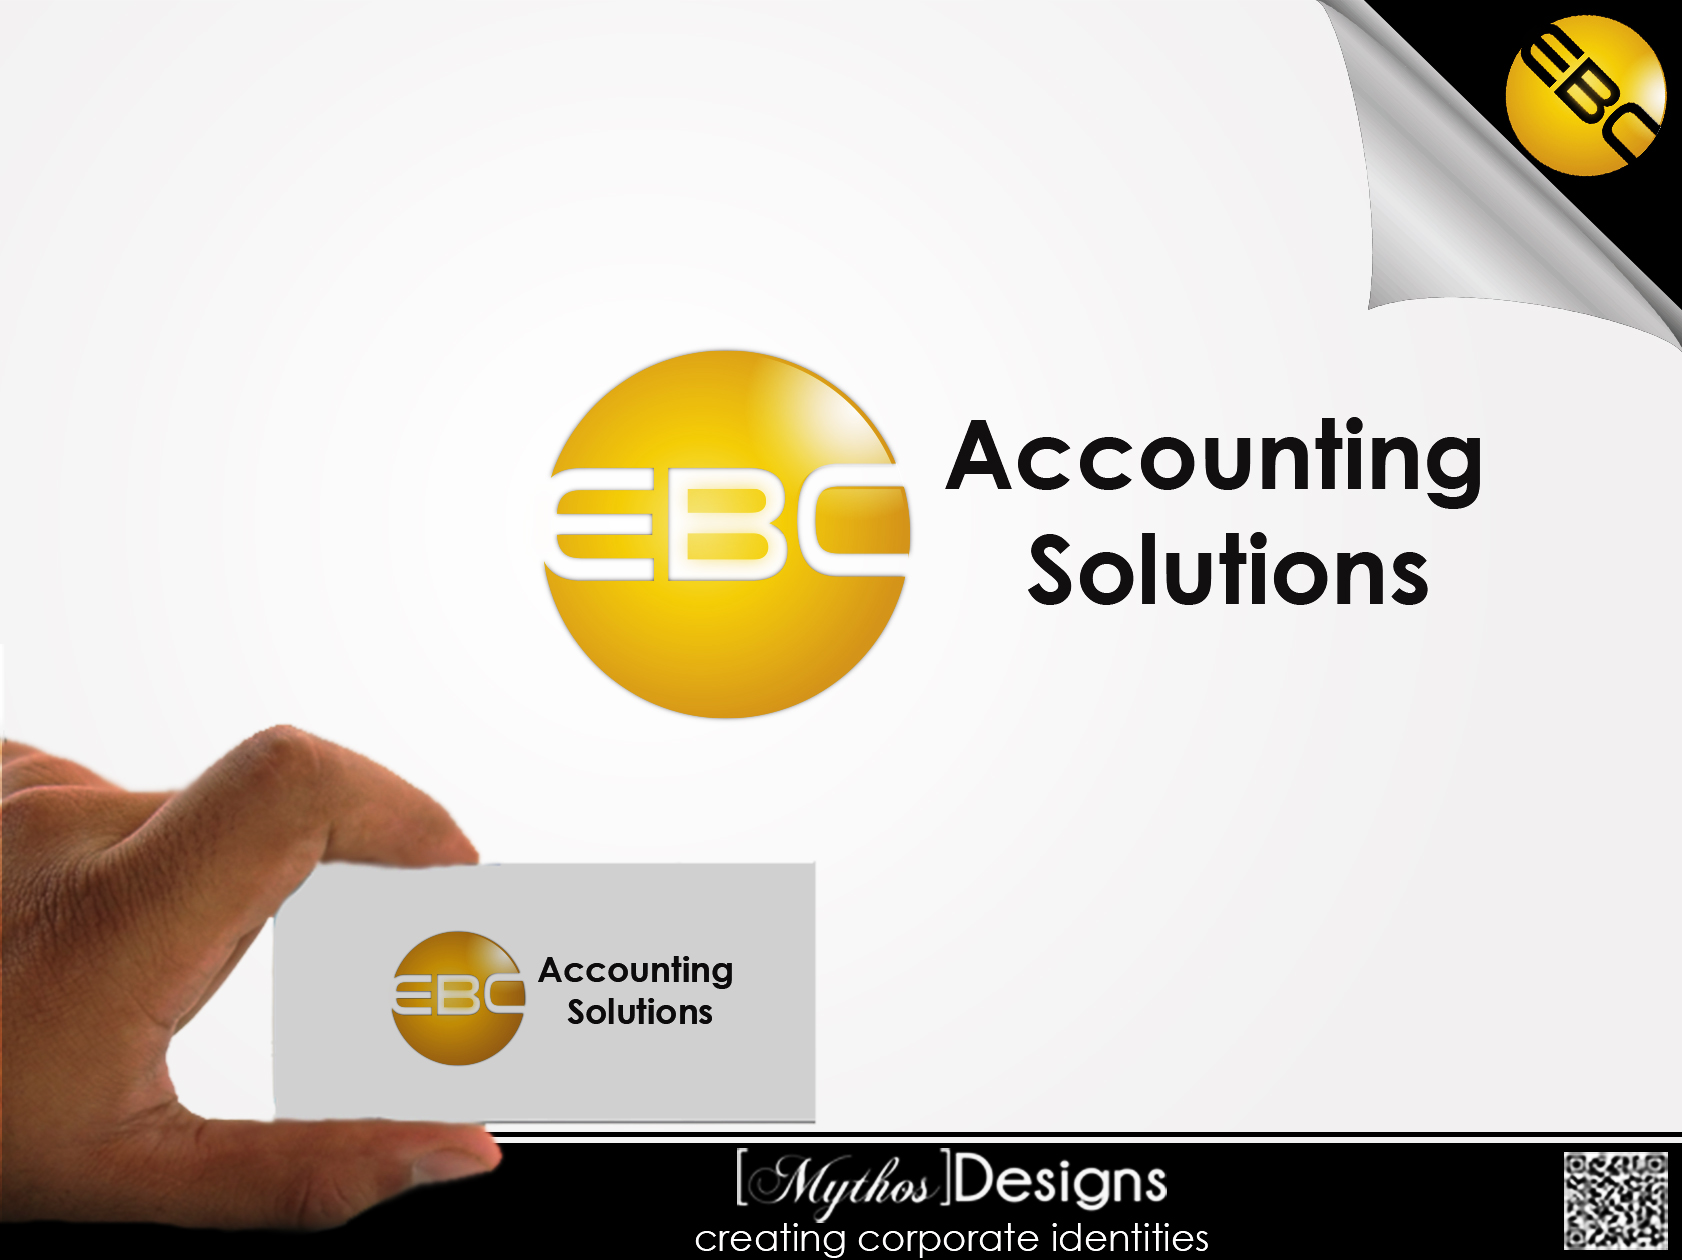 Logo Design by Mythos Designs - Entry No. 213 in the Logo Design Contest New Logo Design for EBC Accounting Solutions.